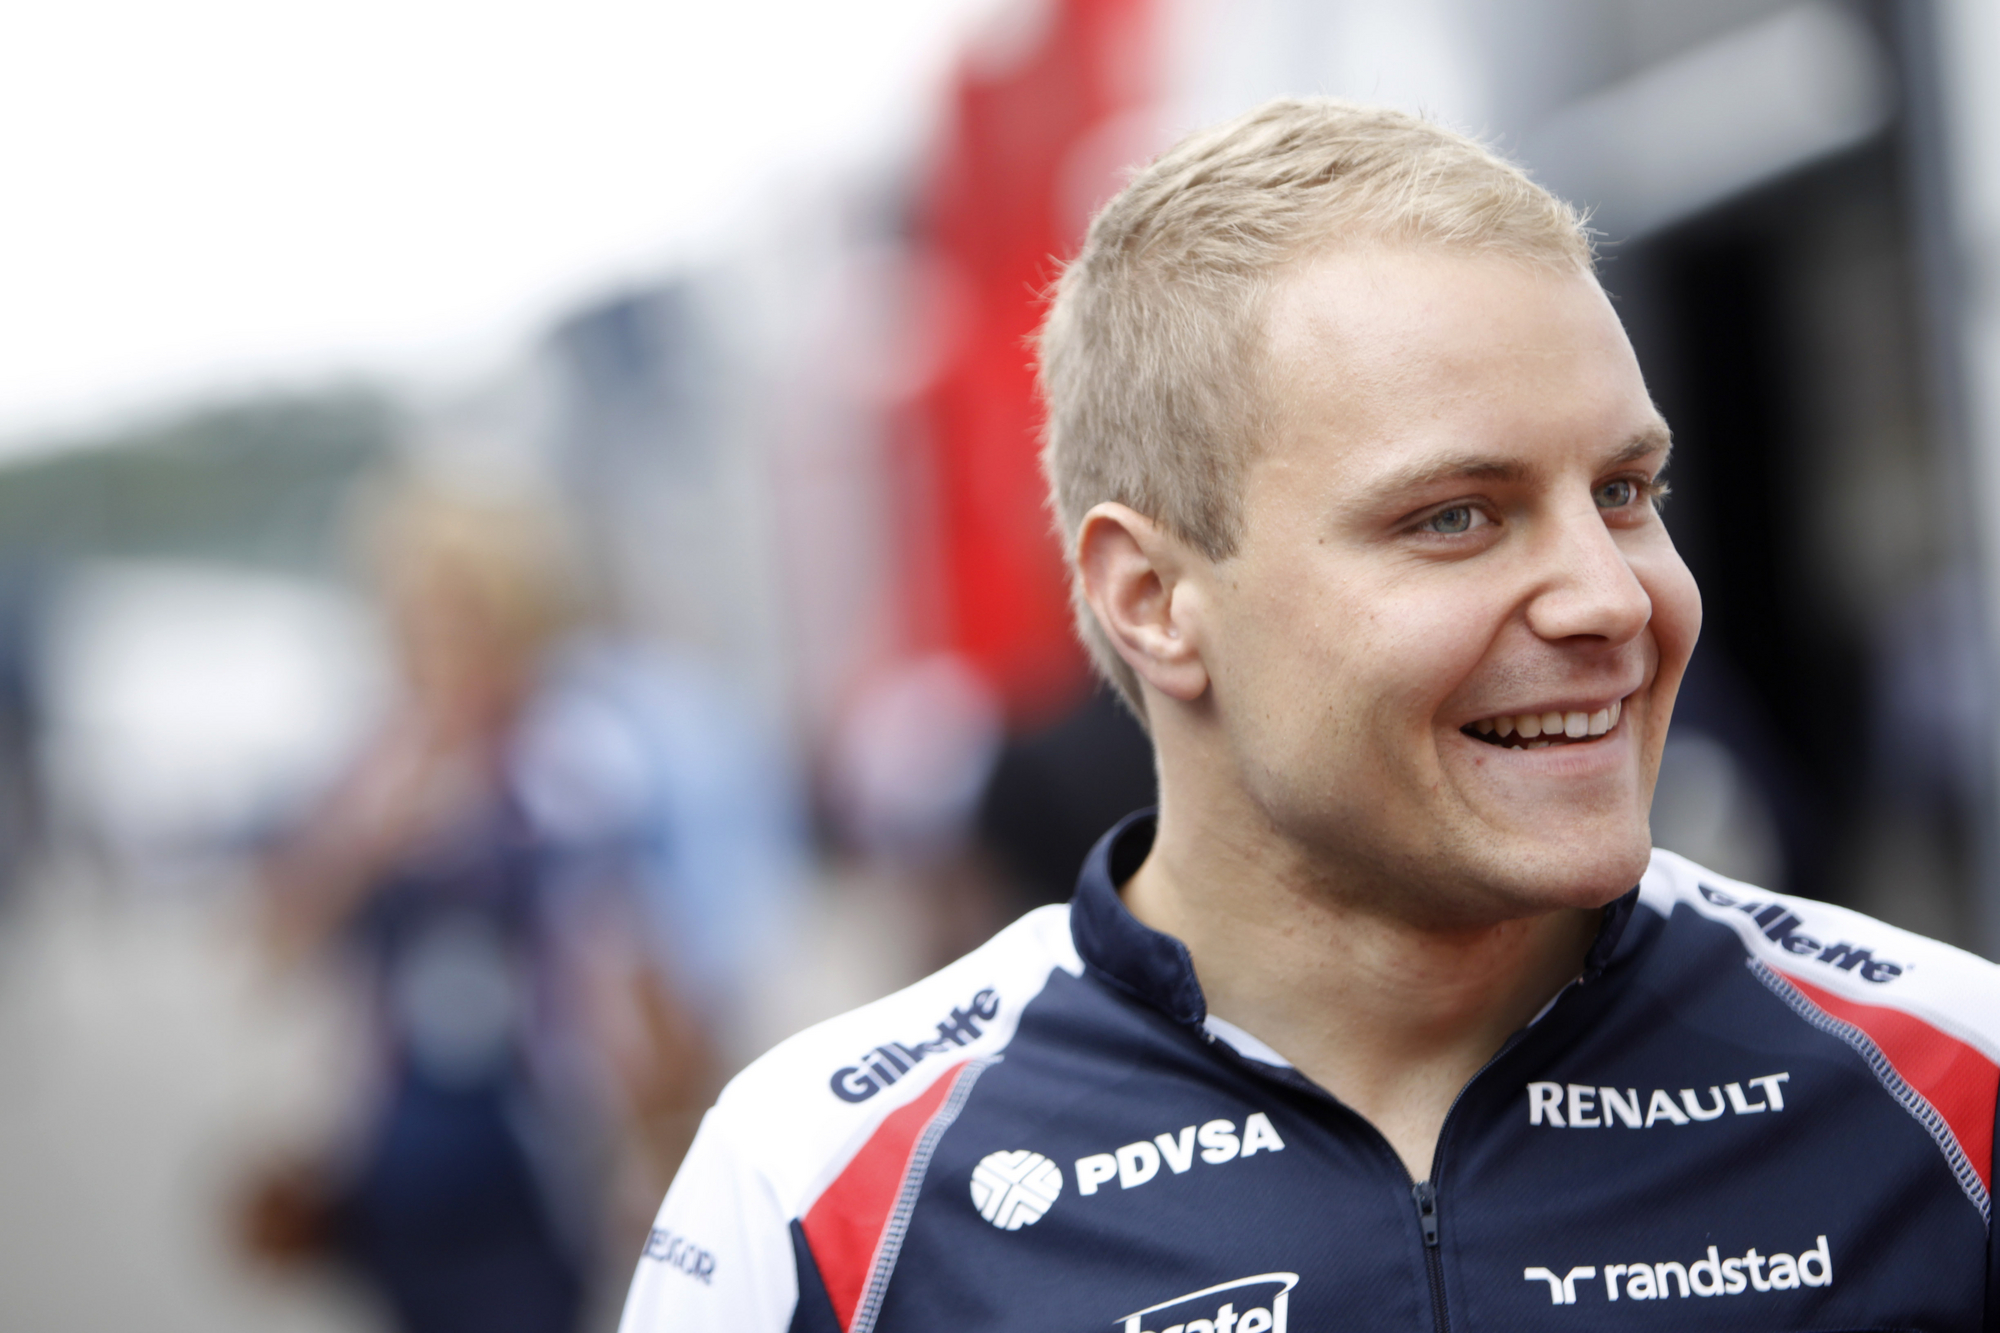 Bottas was reserve driver and test driver for Williams for 2012